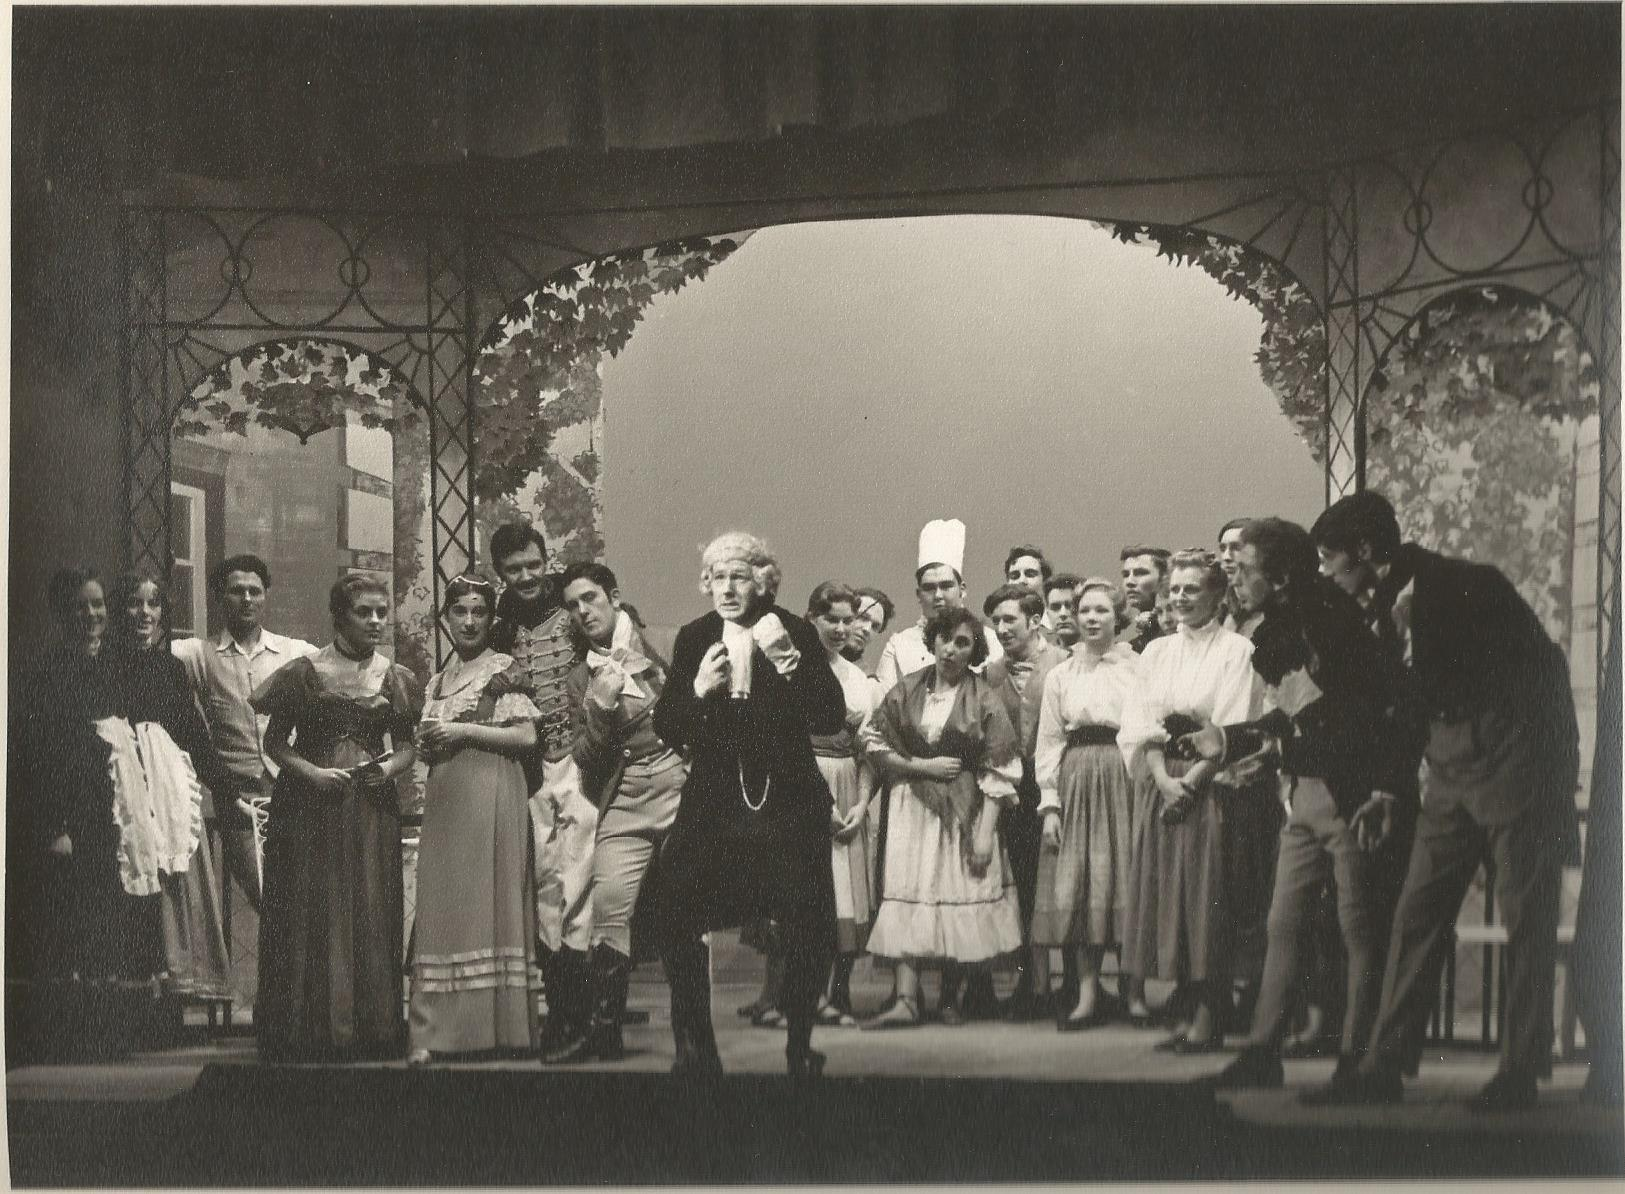 ucl operatic society don procopio 1955